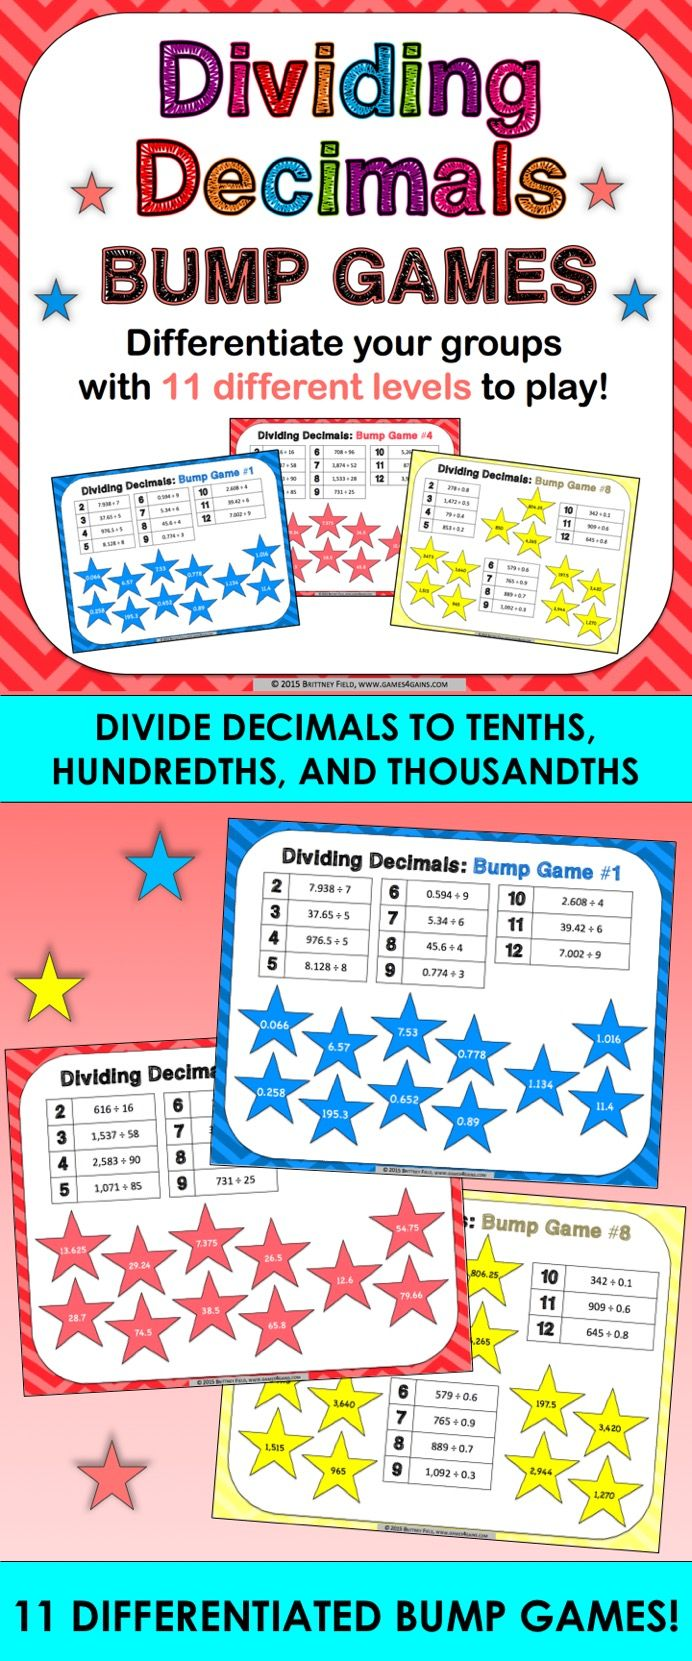 74 best Math images on Pinterest | Fractions, Math fractions and School